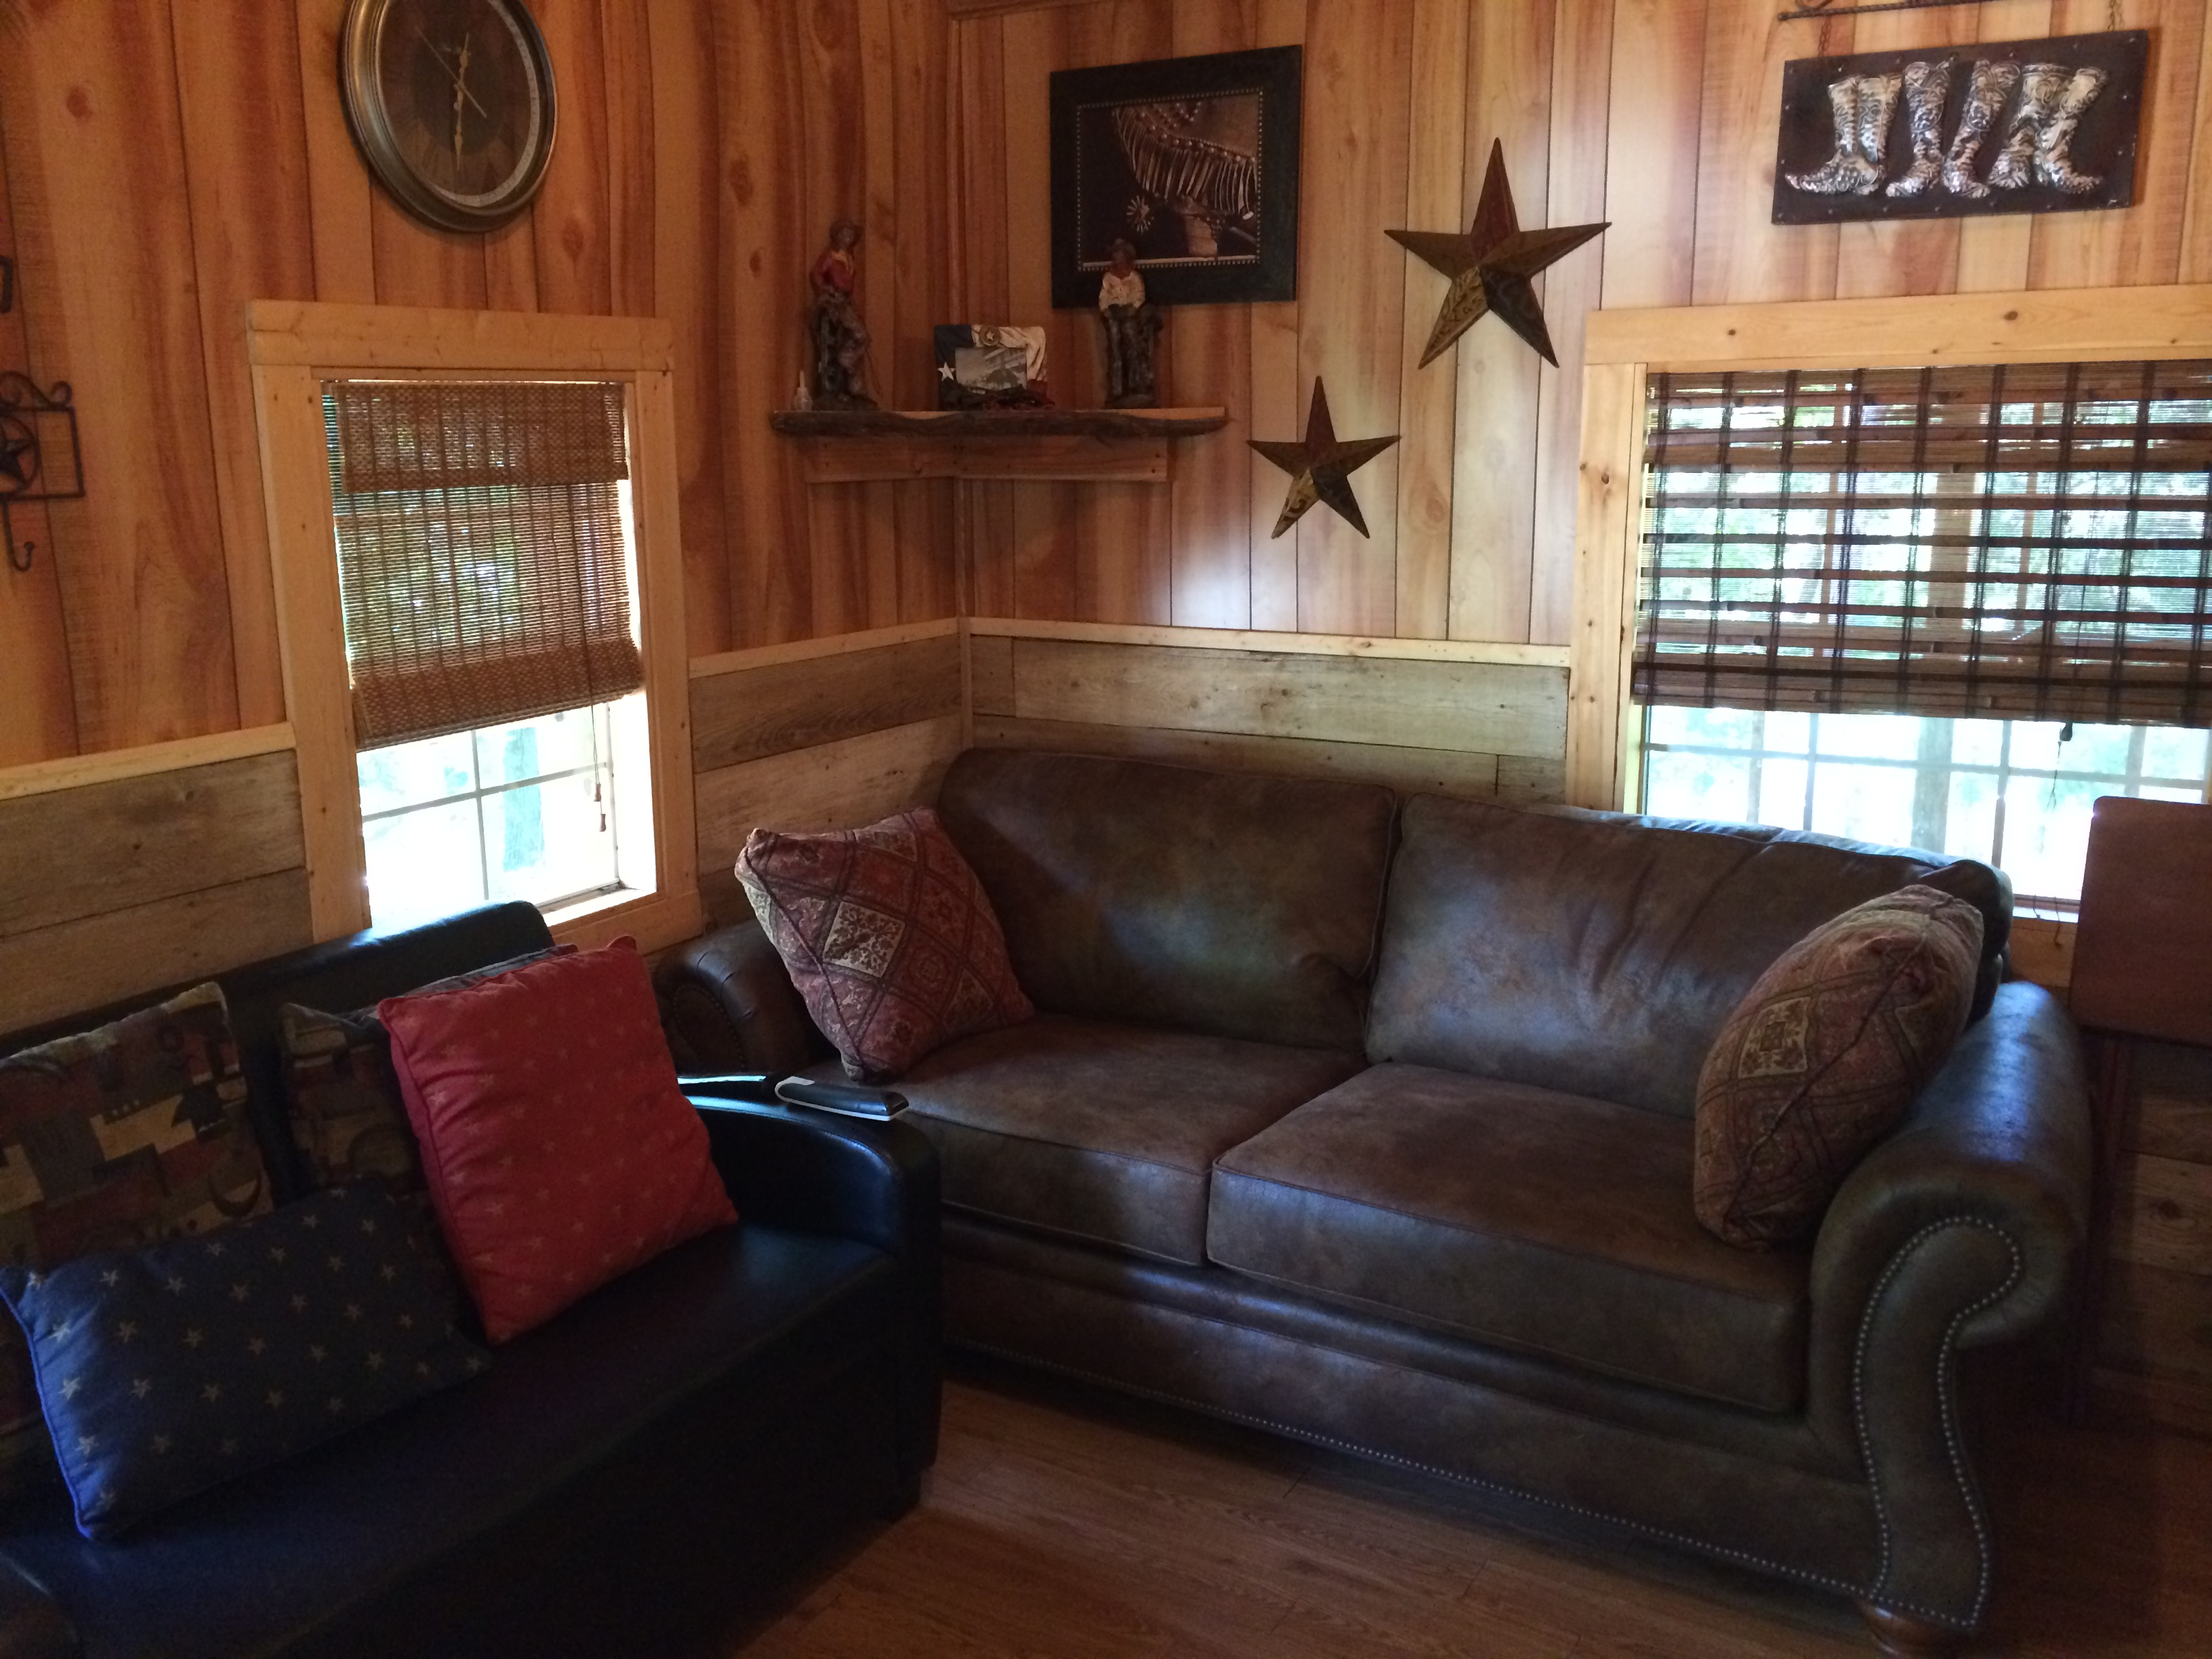 a media rentals lessons cabins learn stories hires environmental at article valuable dale students lake cabin download hollow news